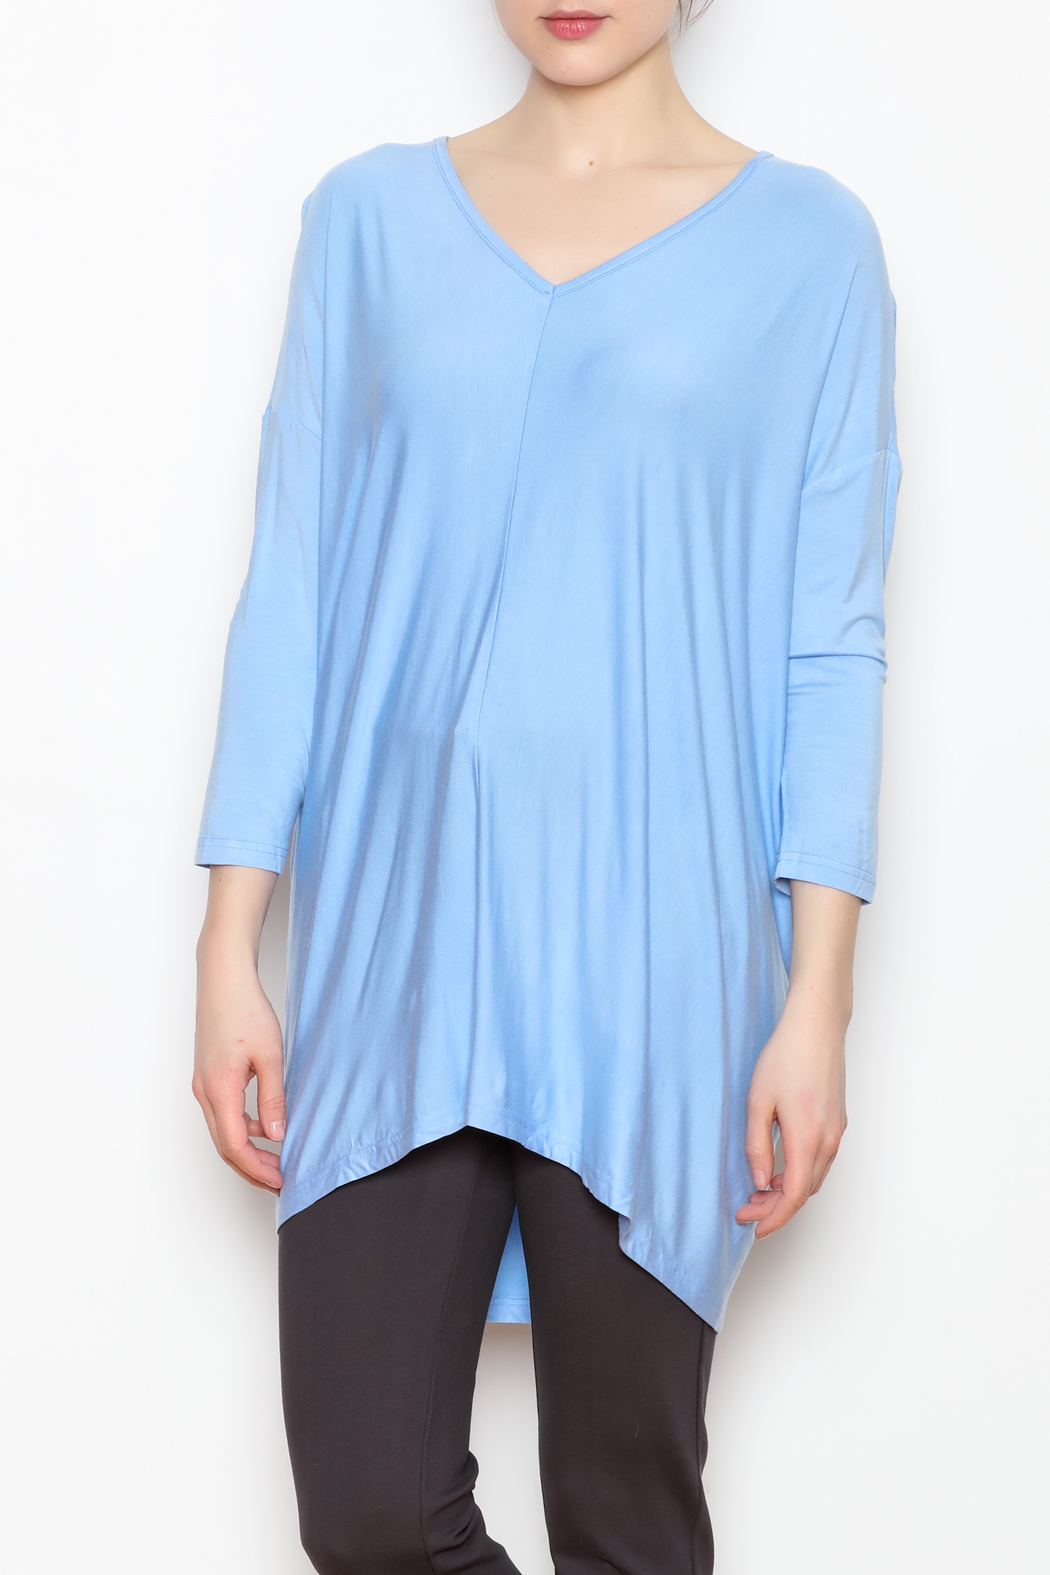 JoyJoy V-Neck Tunic - Main Image